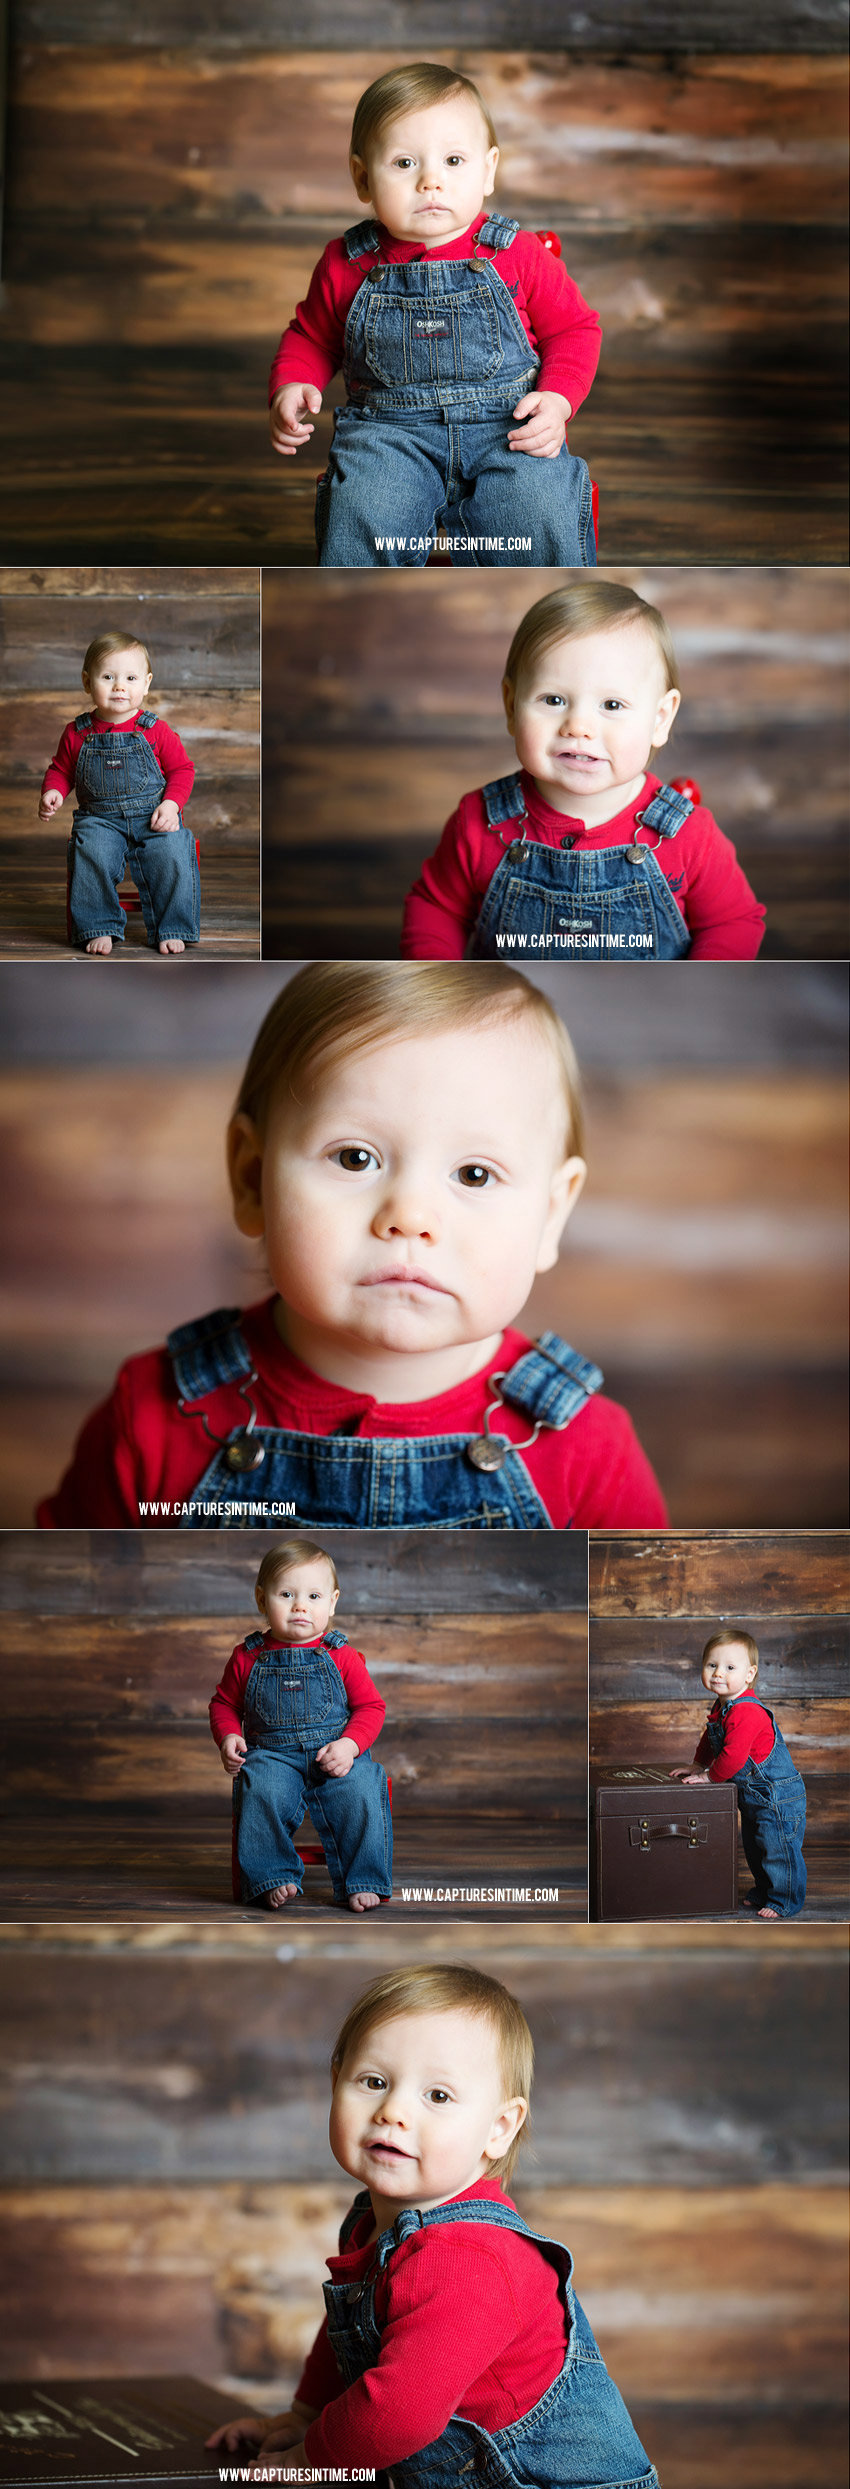 Kansas City Cake Smash Photo Session boy in overalls and red shirt on wood backdrop collage